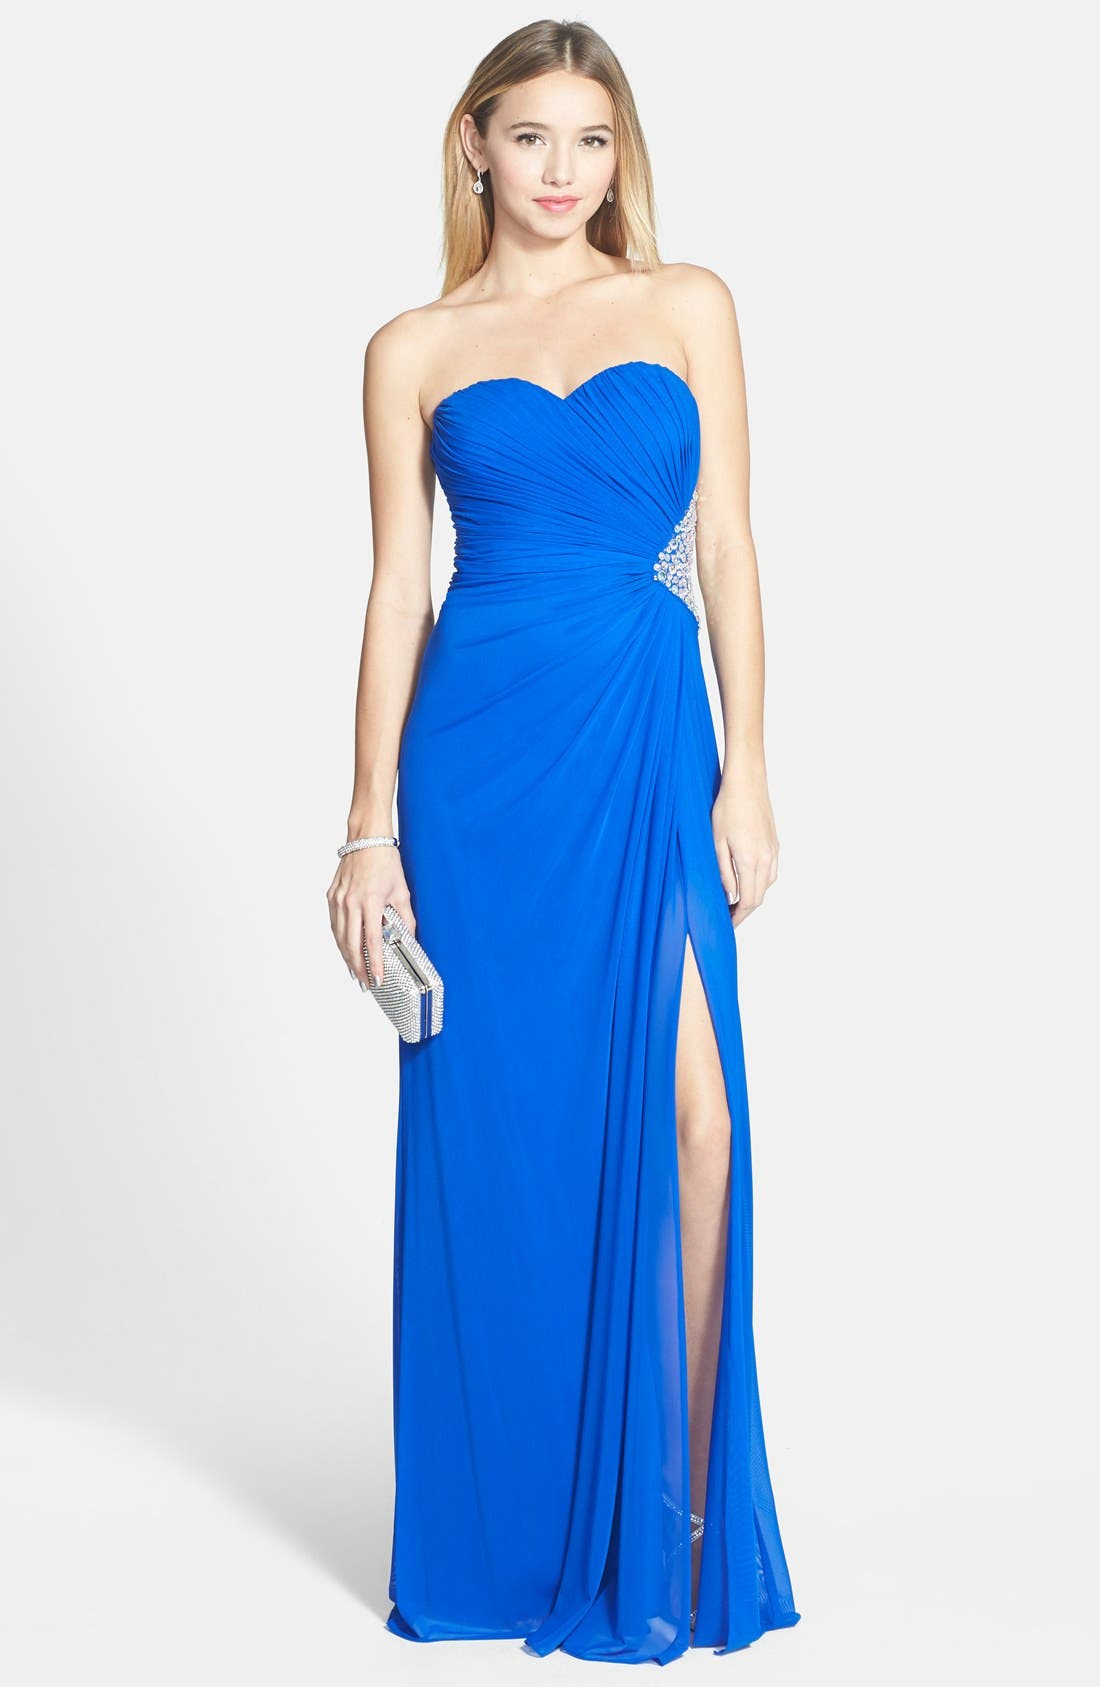 Main Image - Xscape Side Cutout Embellished Strapless Gown